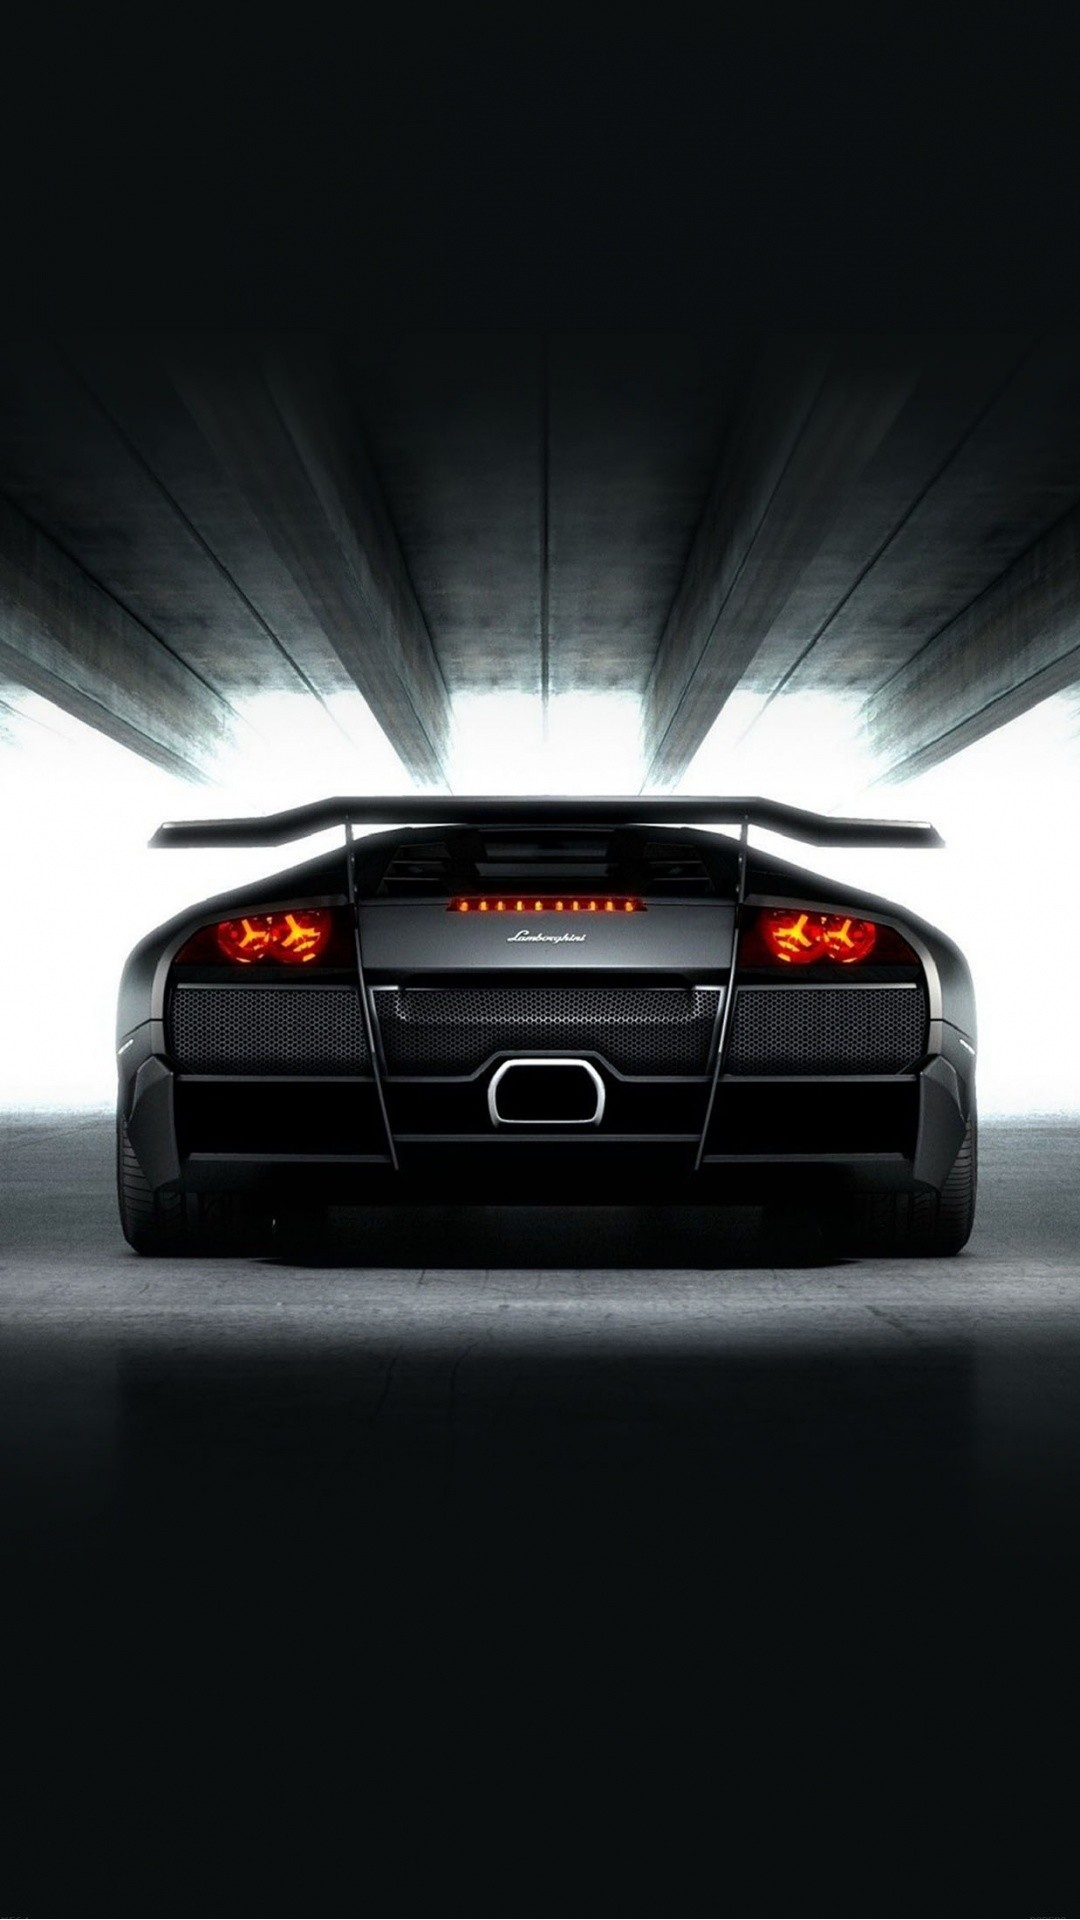 Free Download Fast And Furious Cars Wallpaper 65 Images